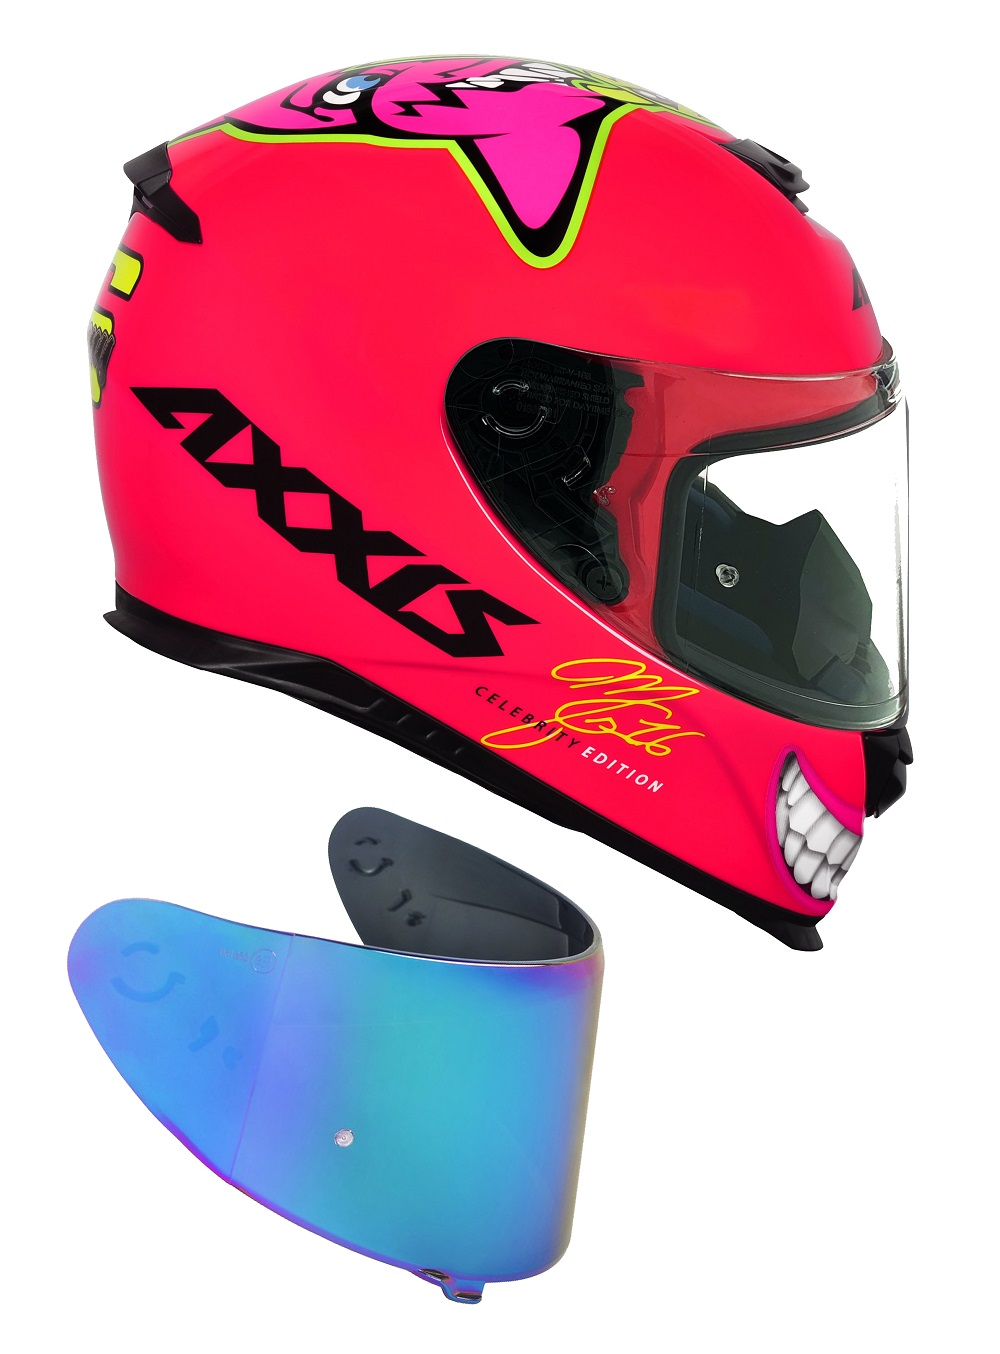 Capacete Axxis Mg16 Celebrity Edition Marianny Gloss Pink Com Viseira Azul